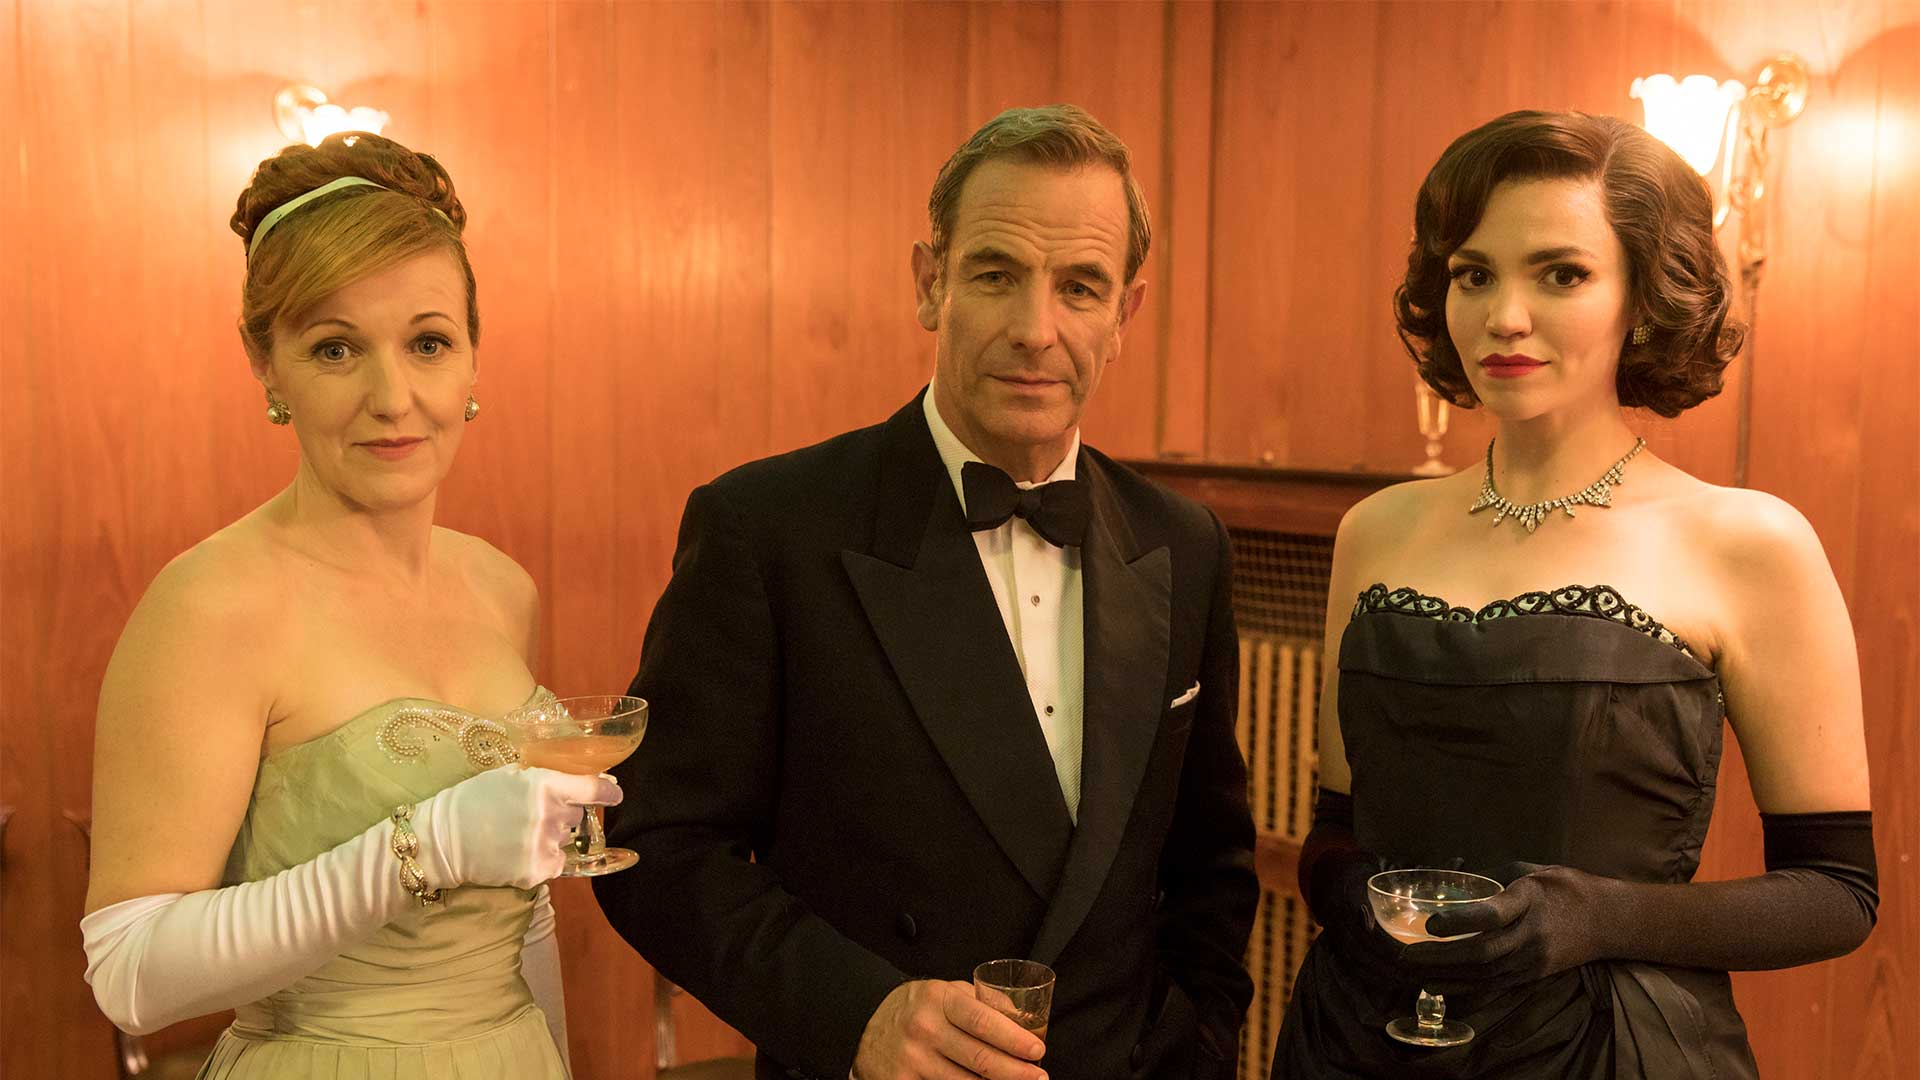 Pictured from left to right: Kacey Ainsworth as Cathy Keating, Robson Green as Geordie Keating, and Seline Hizli as Margaret